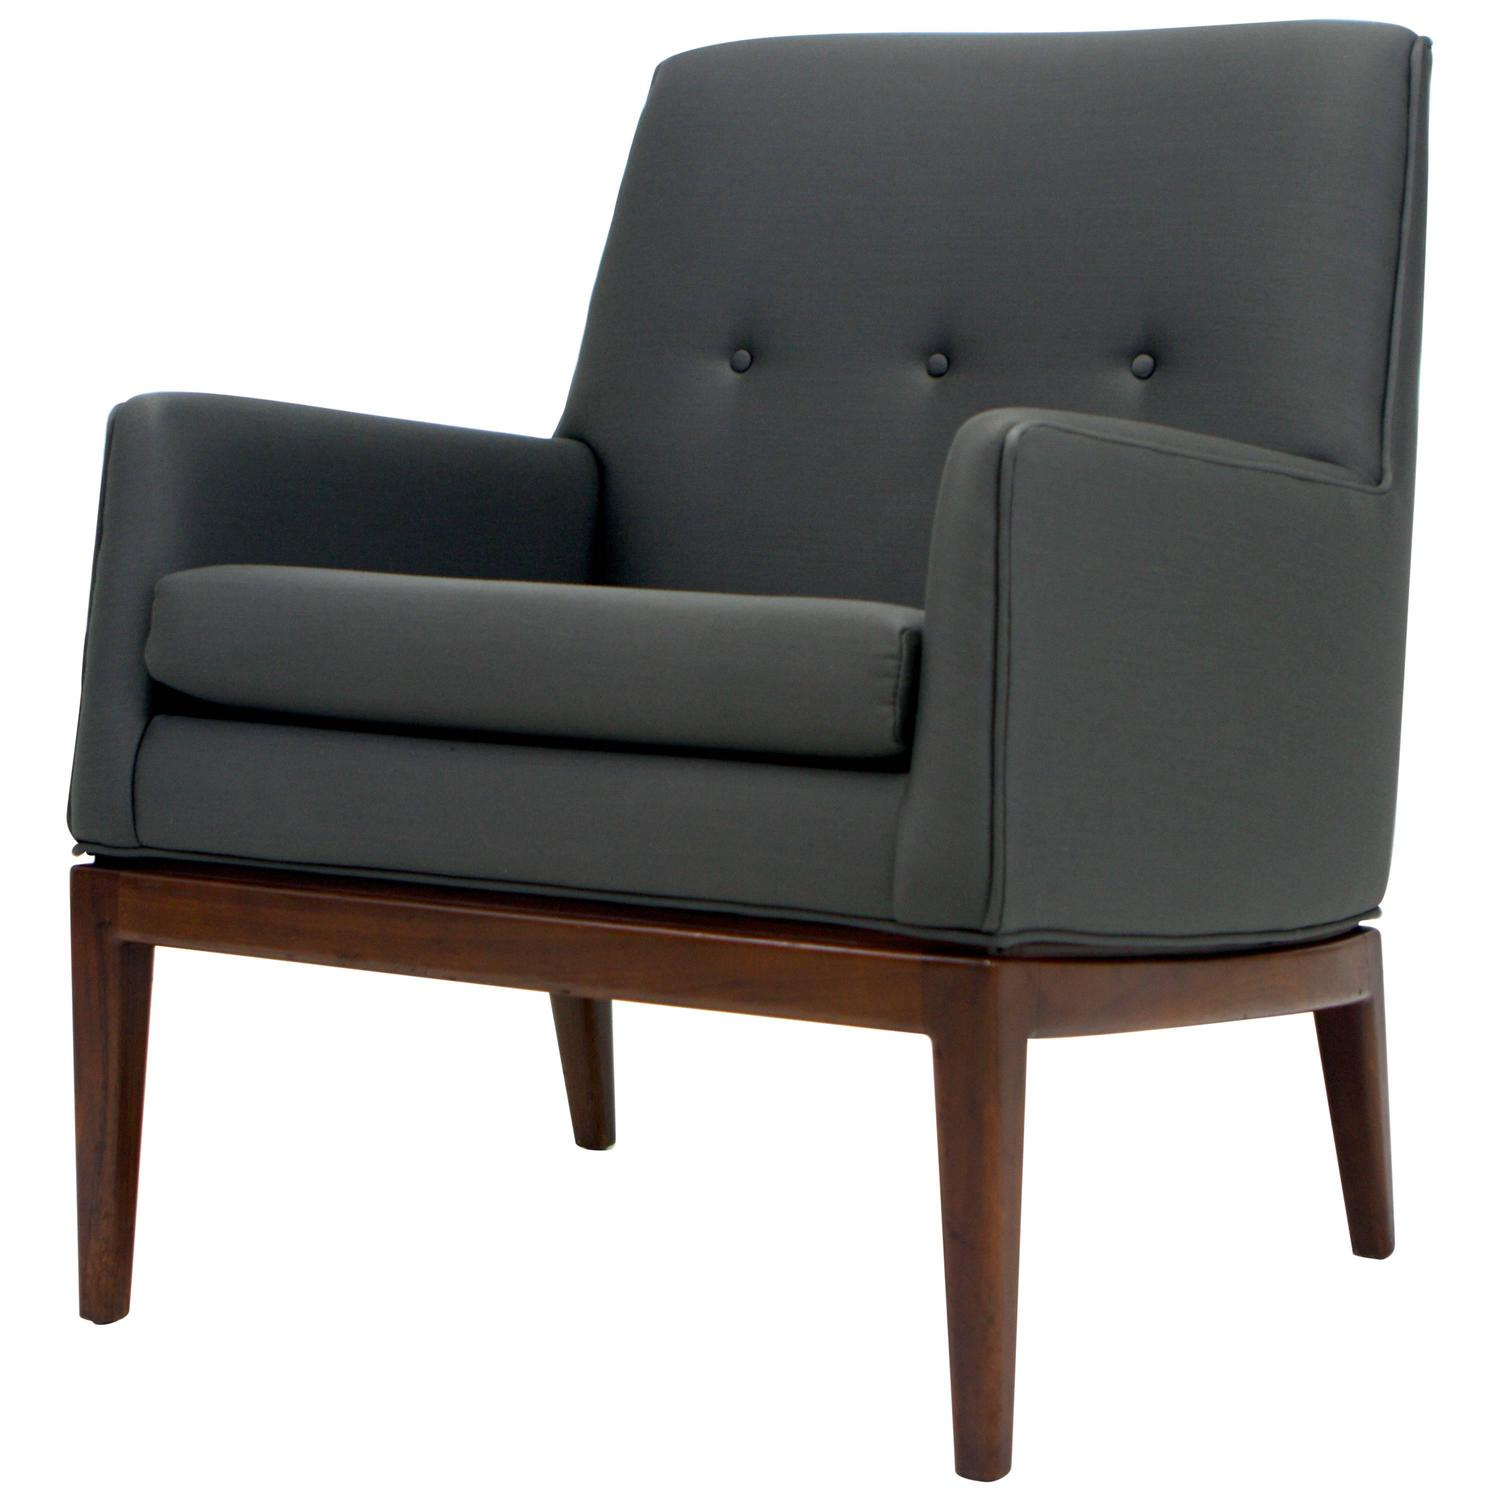 Petite Chairs Jens Risom Petite Lounge Chair For Sale At 1stdibs